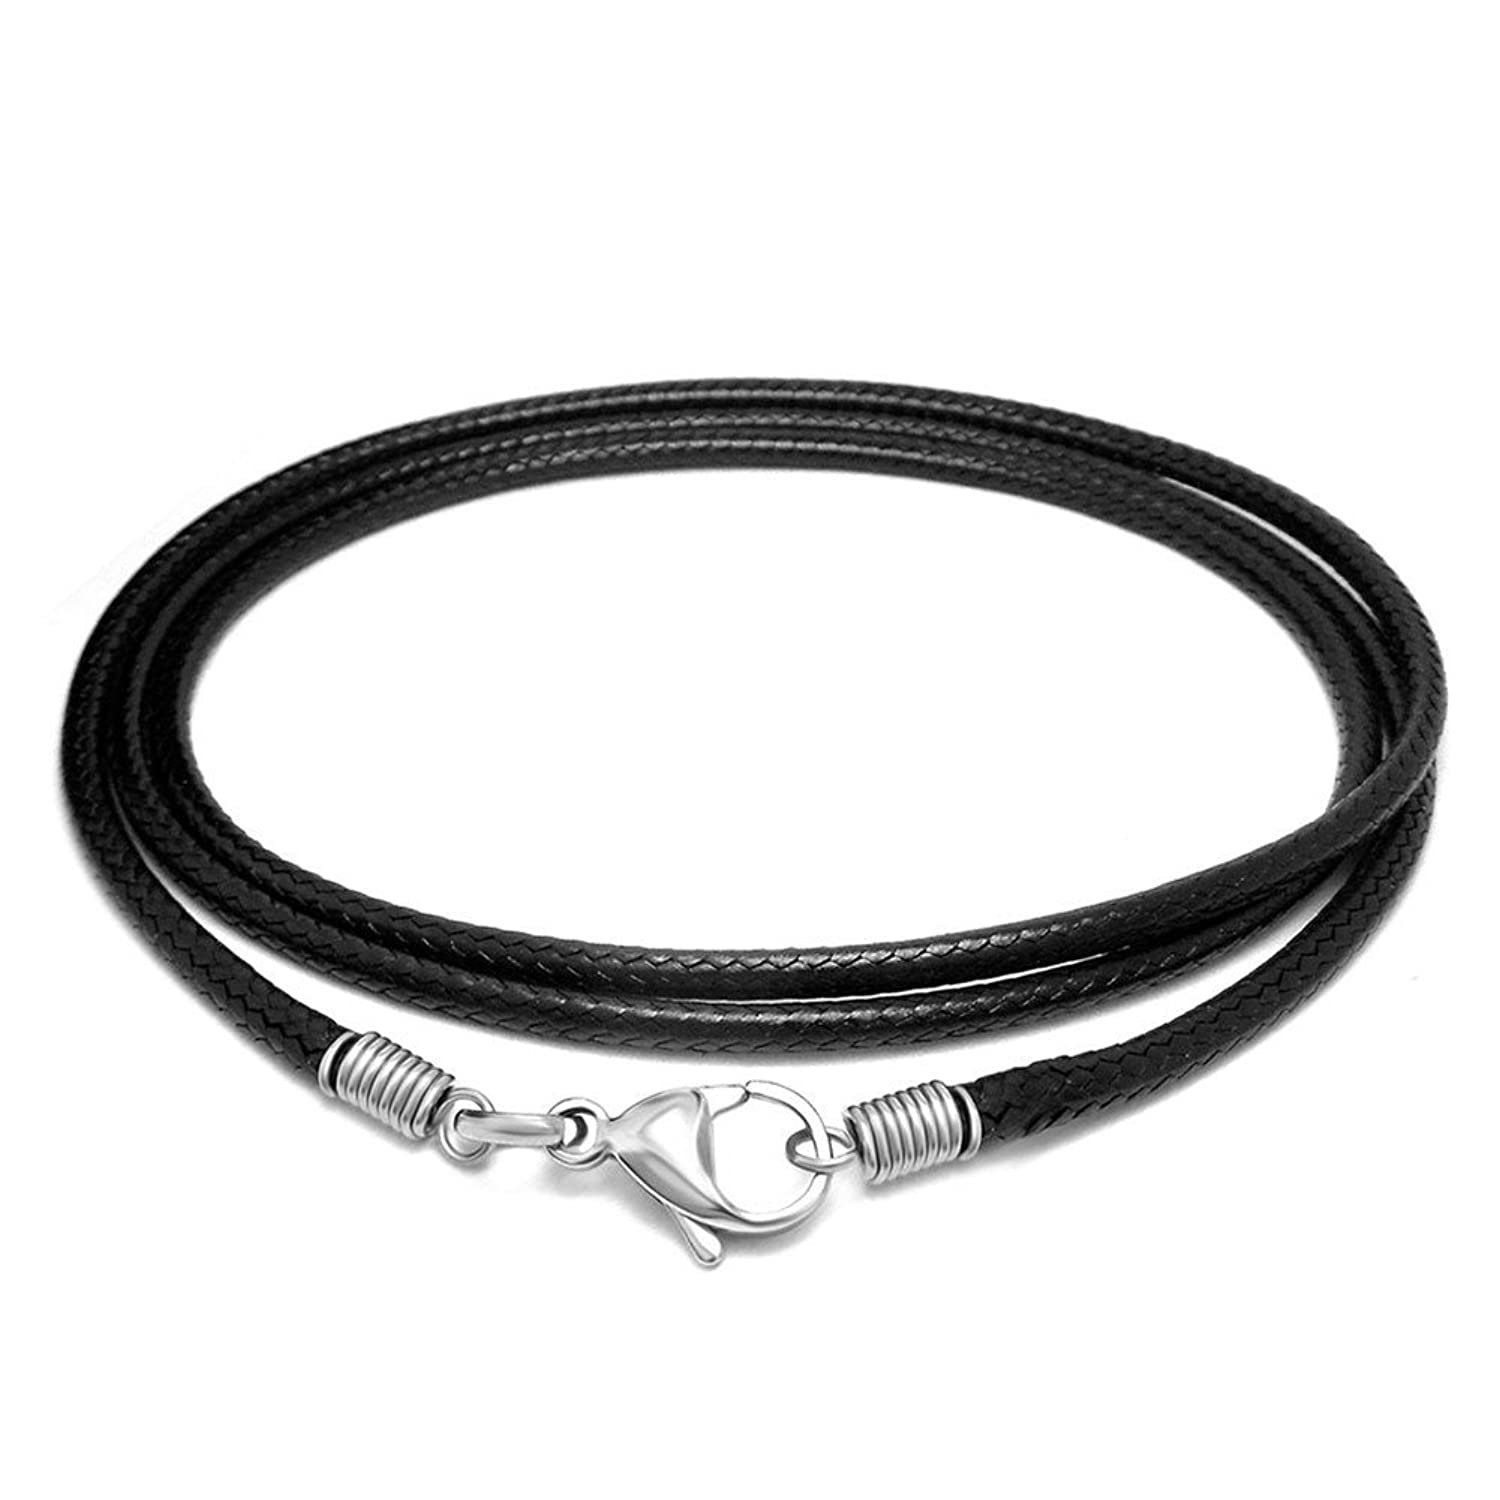 Miraculous Garden 2.5mm Braided Black Leather Cord Rope Chain Necklace with Stainless Steel Lobster Clasp(18-24 inch)